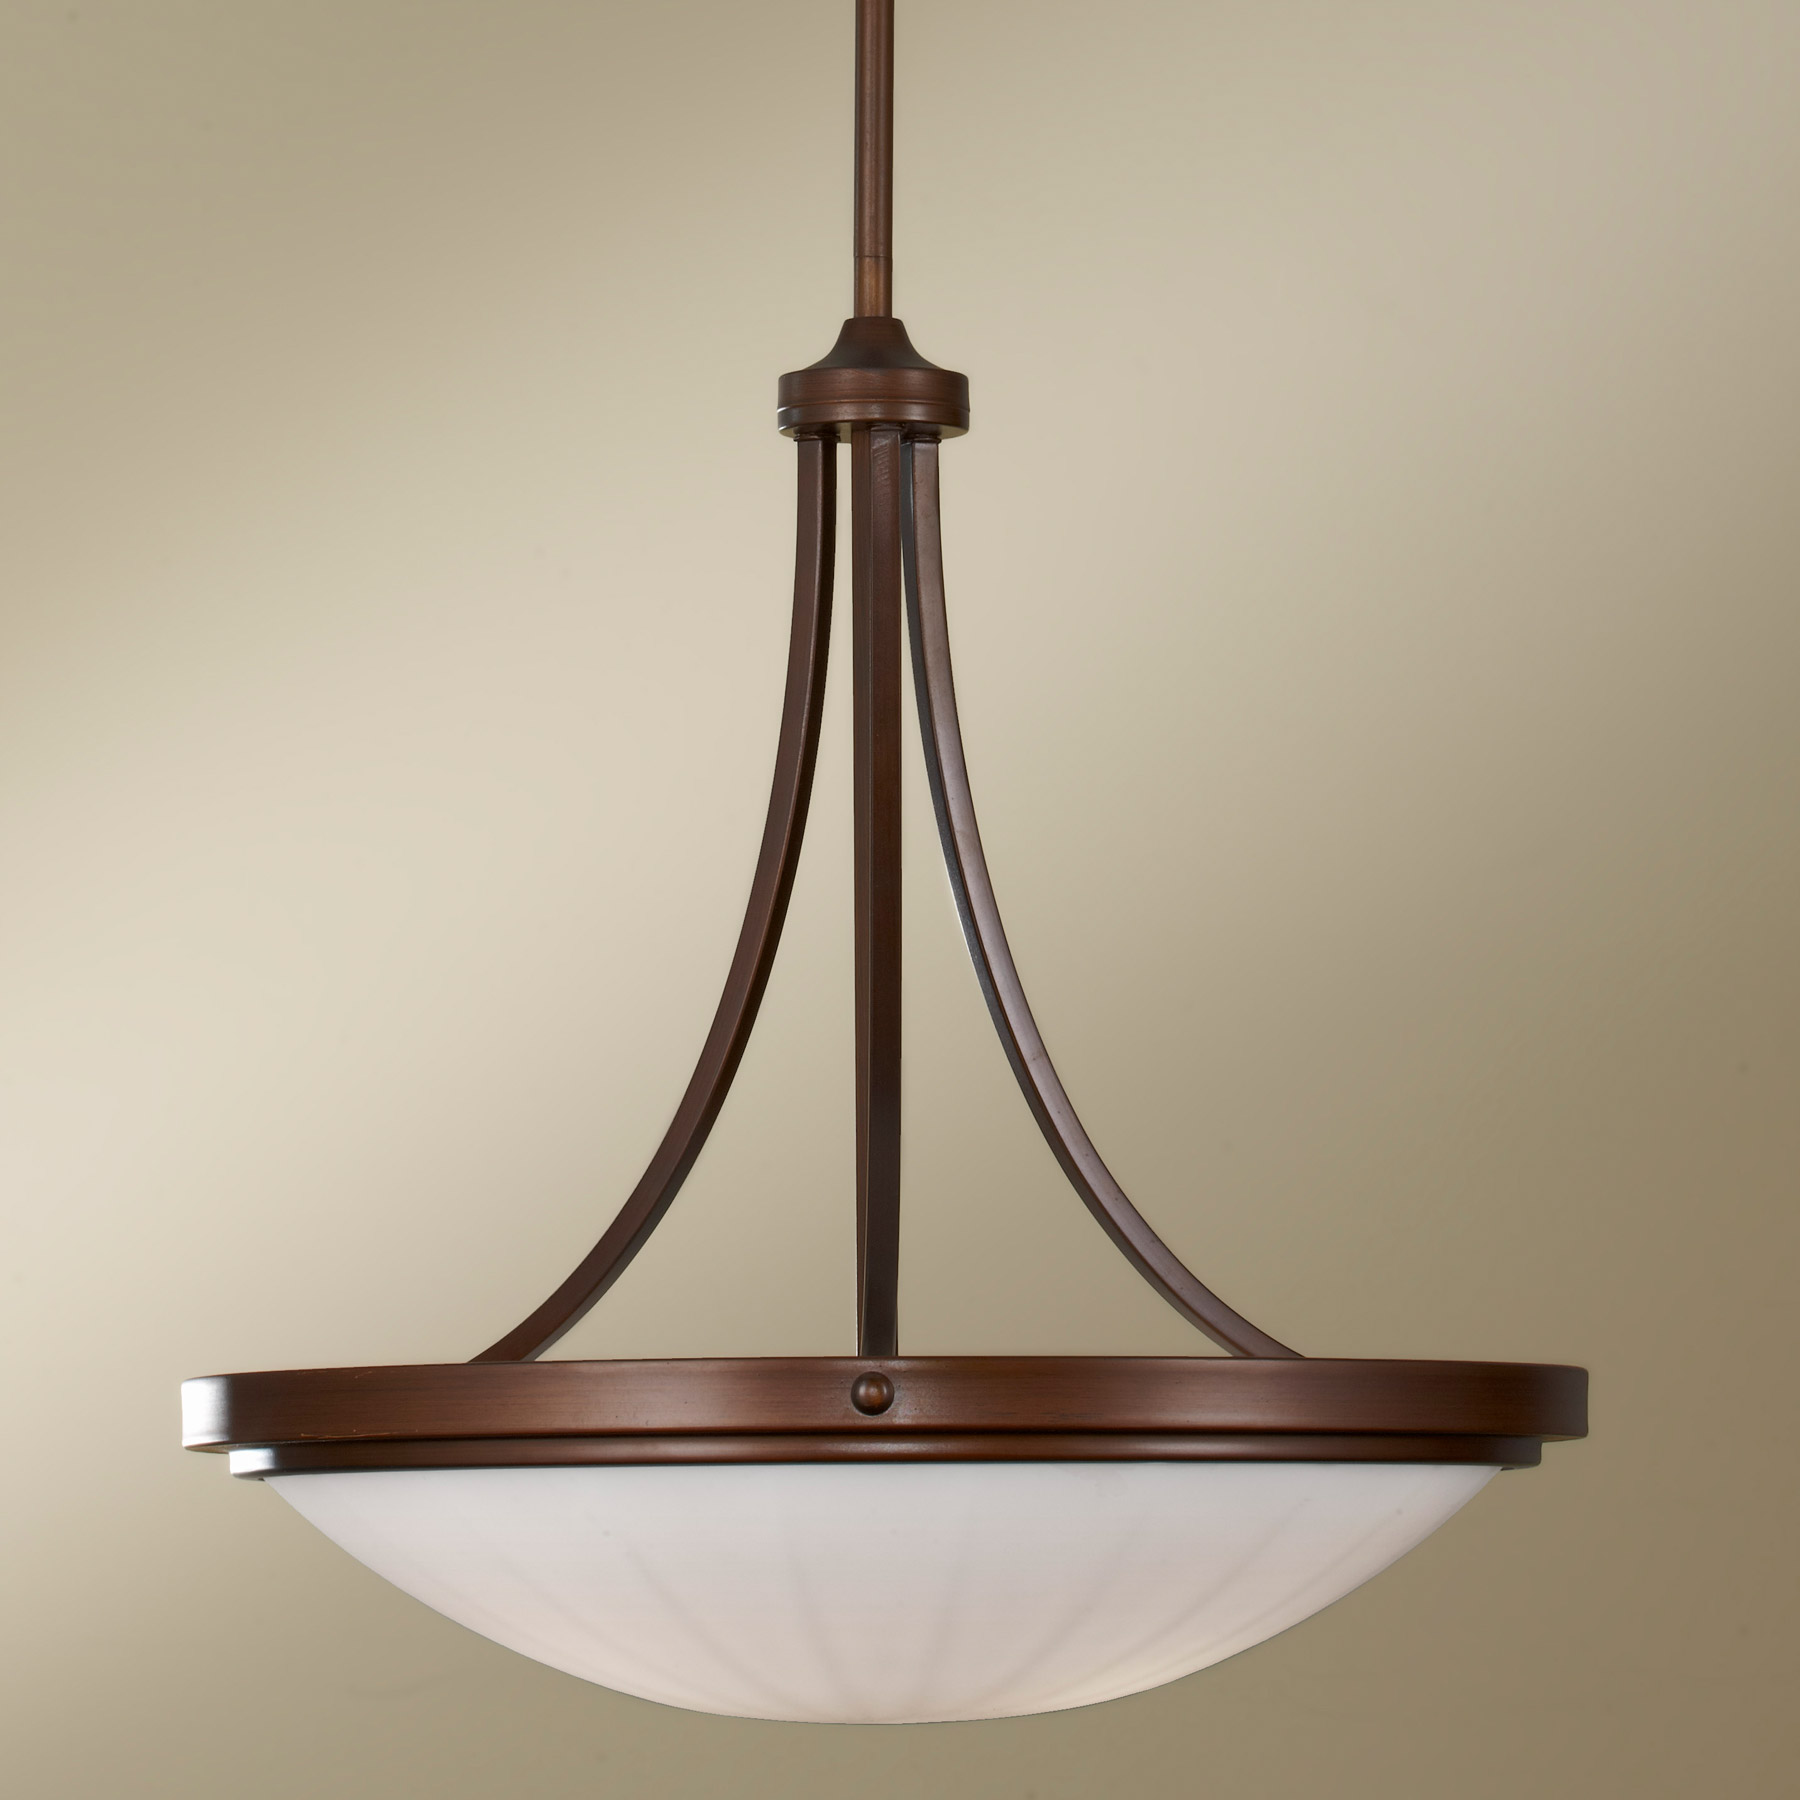 & Murray Feiss F2583/3HTBZ Perry Inverted Pendant